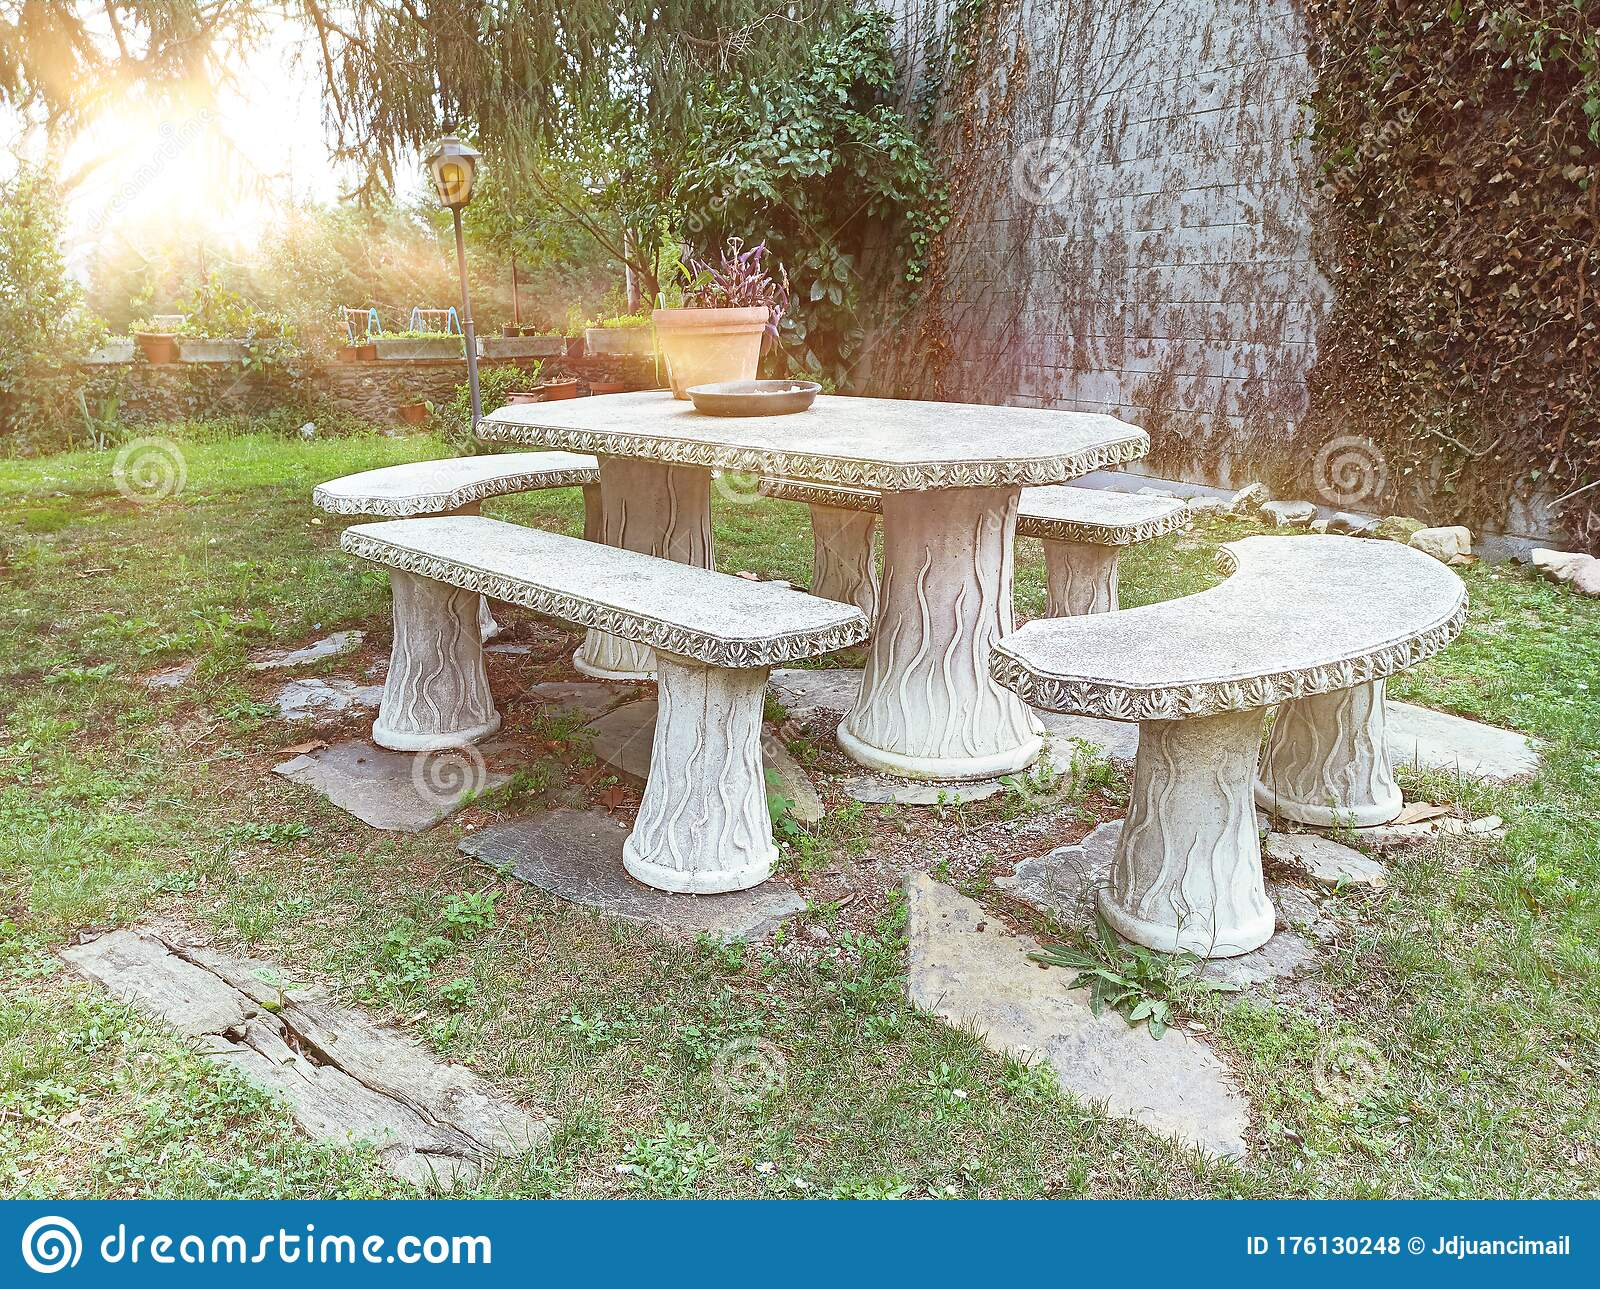 875 Garden Seating Stone Photos Free Royalty Free Stock Photos From Dreamstime